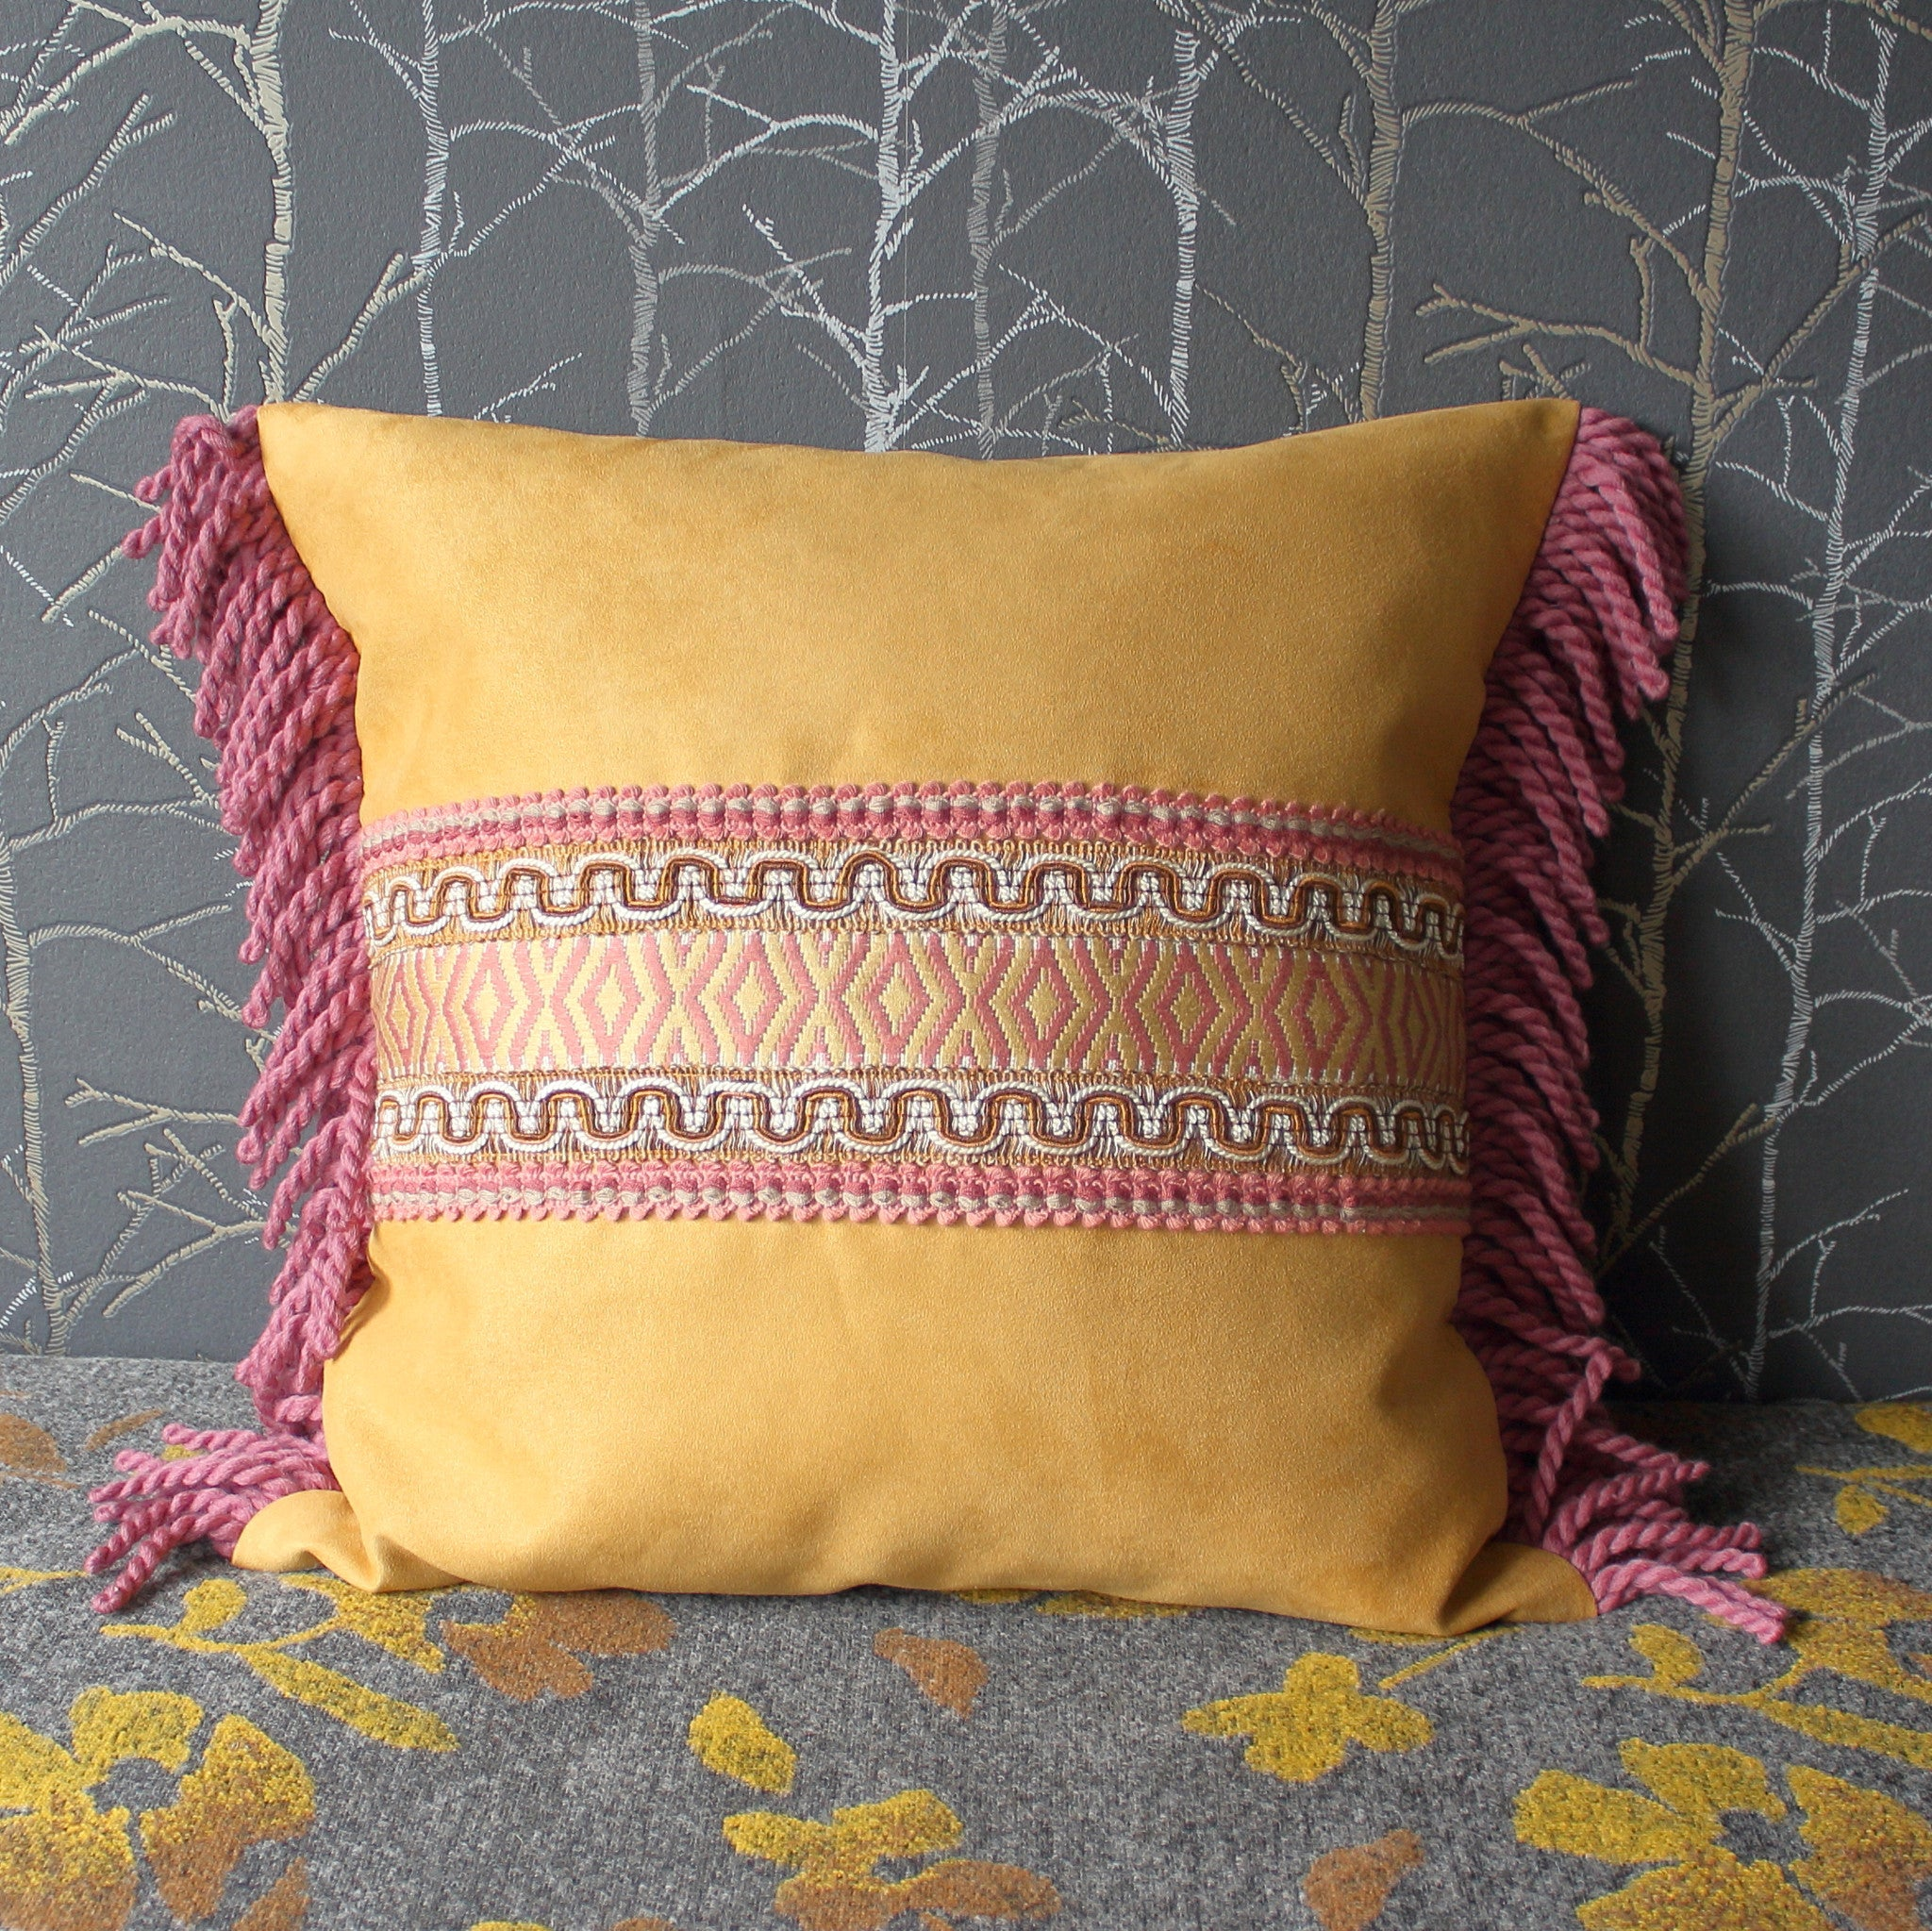 square ten one easy fast piece the envelope covers thehappyhousie happy case housie pillow at crazy minute super pillows